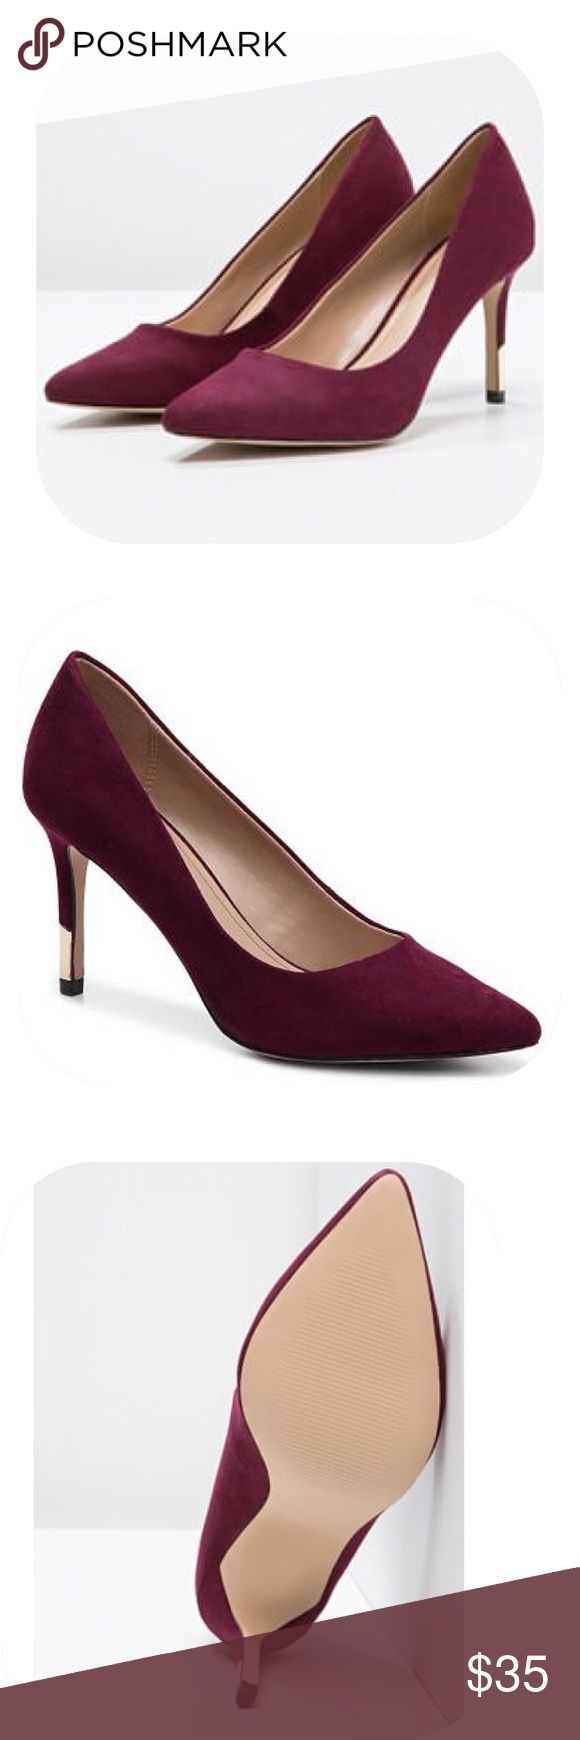 "Aldo Valezza Suede Pump in Bordeaux - Size 7.5 Only worn for a few minutes on carpet. Like new. Comes with box. Description from Aldo: Sexy, subltle and seductive all over, the original stiletto sharpens up courtesy of a metal-edged post heel. Pair it with: Nights on the town, dates and a fierce attitude. - Slip-on. - Pointy toe. - Material: Manmade Textile. - Heel Height: 3.5"" Aldo Shoes Heels"